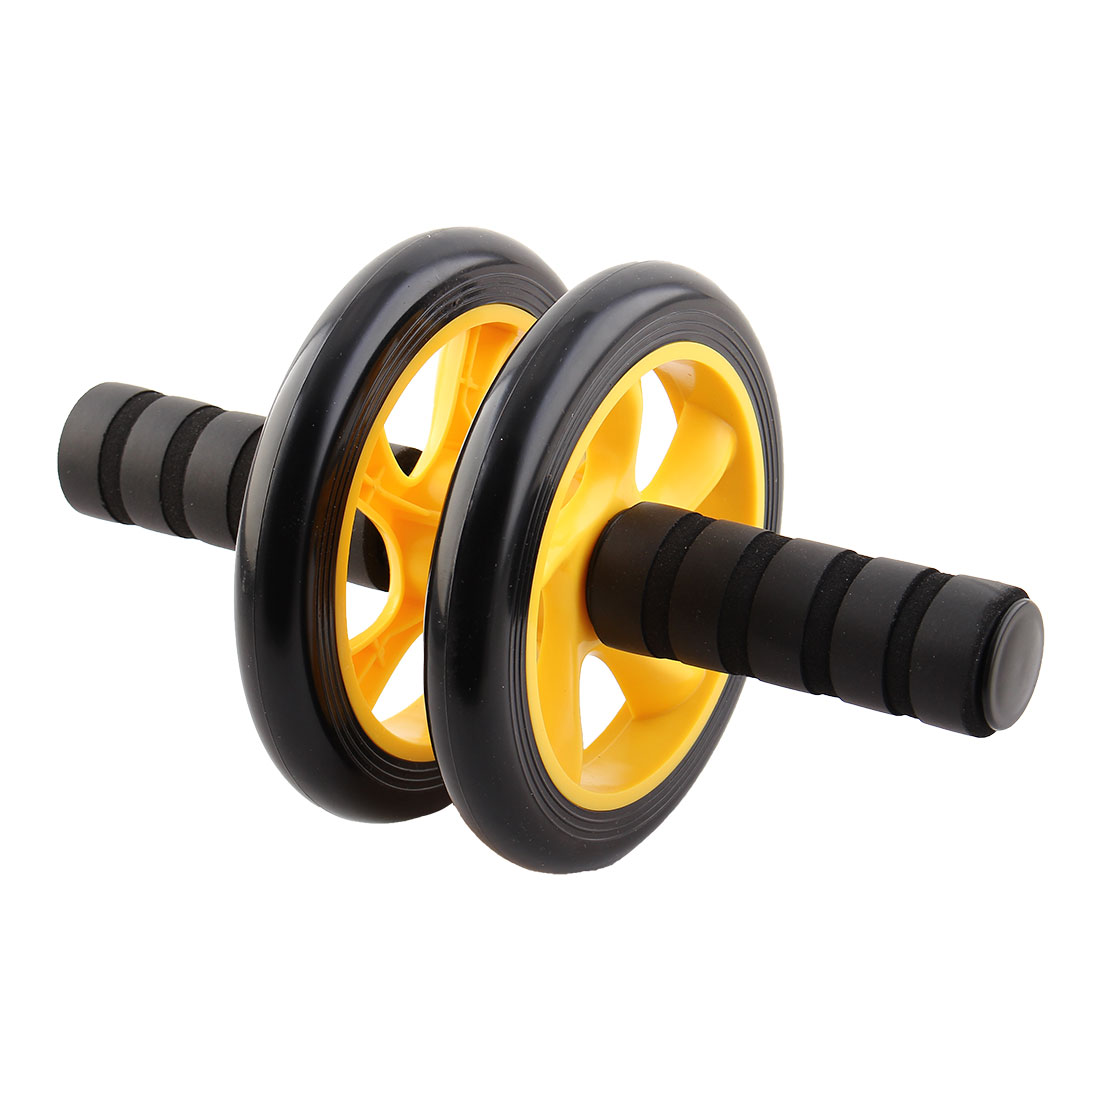 Nonslip Handles Fitness Exercise Abdominal Workout Double Wheel Rollers Yellow